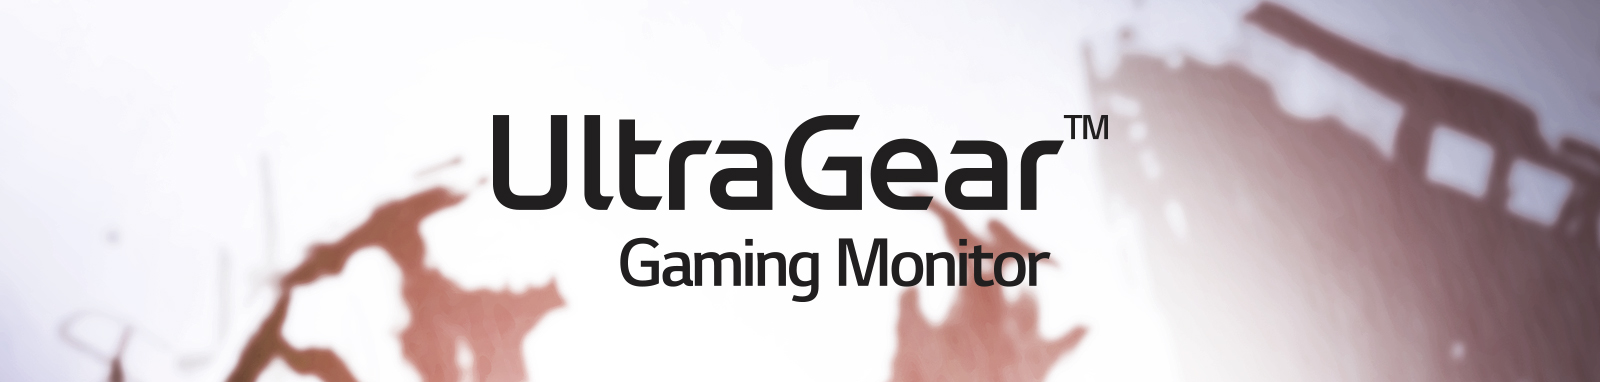 ultraGear gaming monitor logo